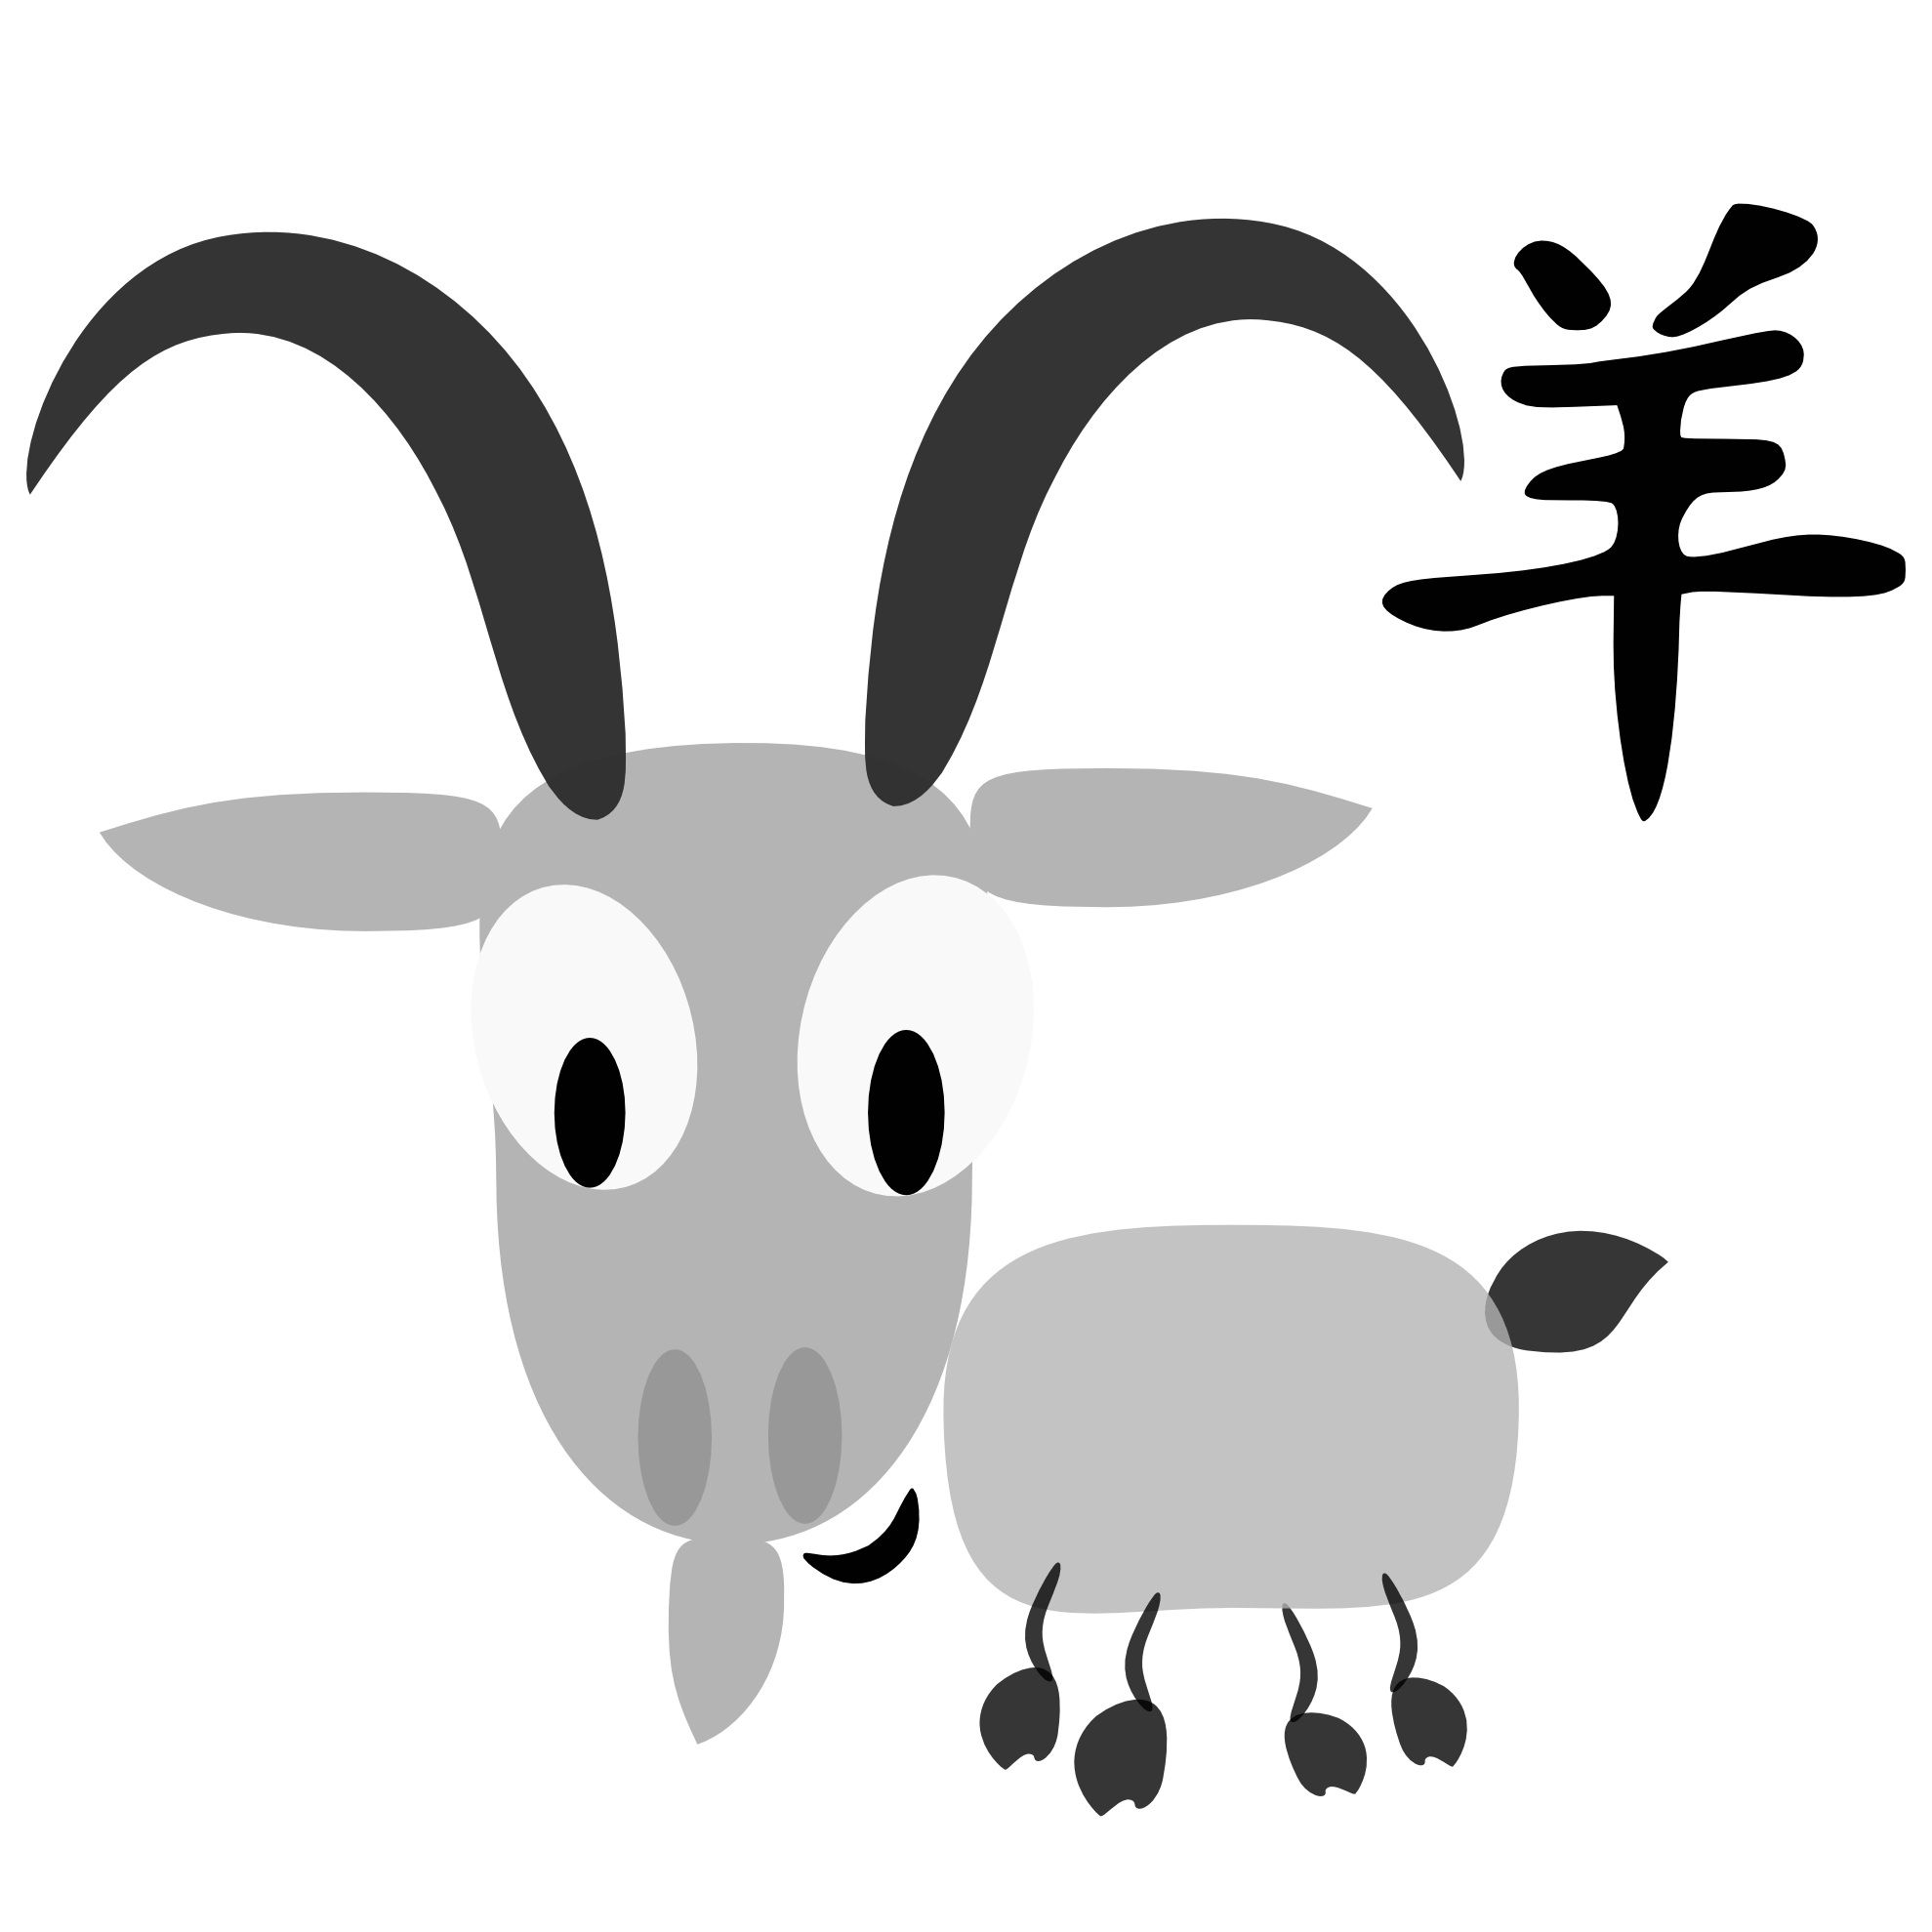 1979x1979 Chinese Horoscope Goat Sign Character Clipart Transparent Png